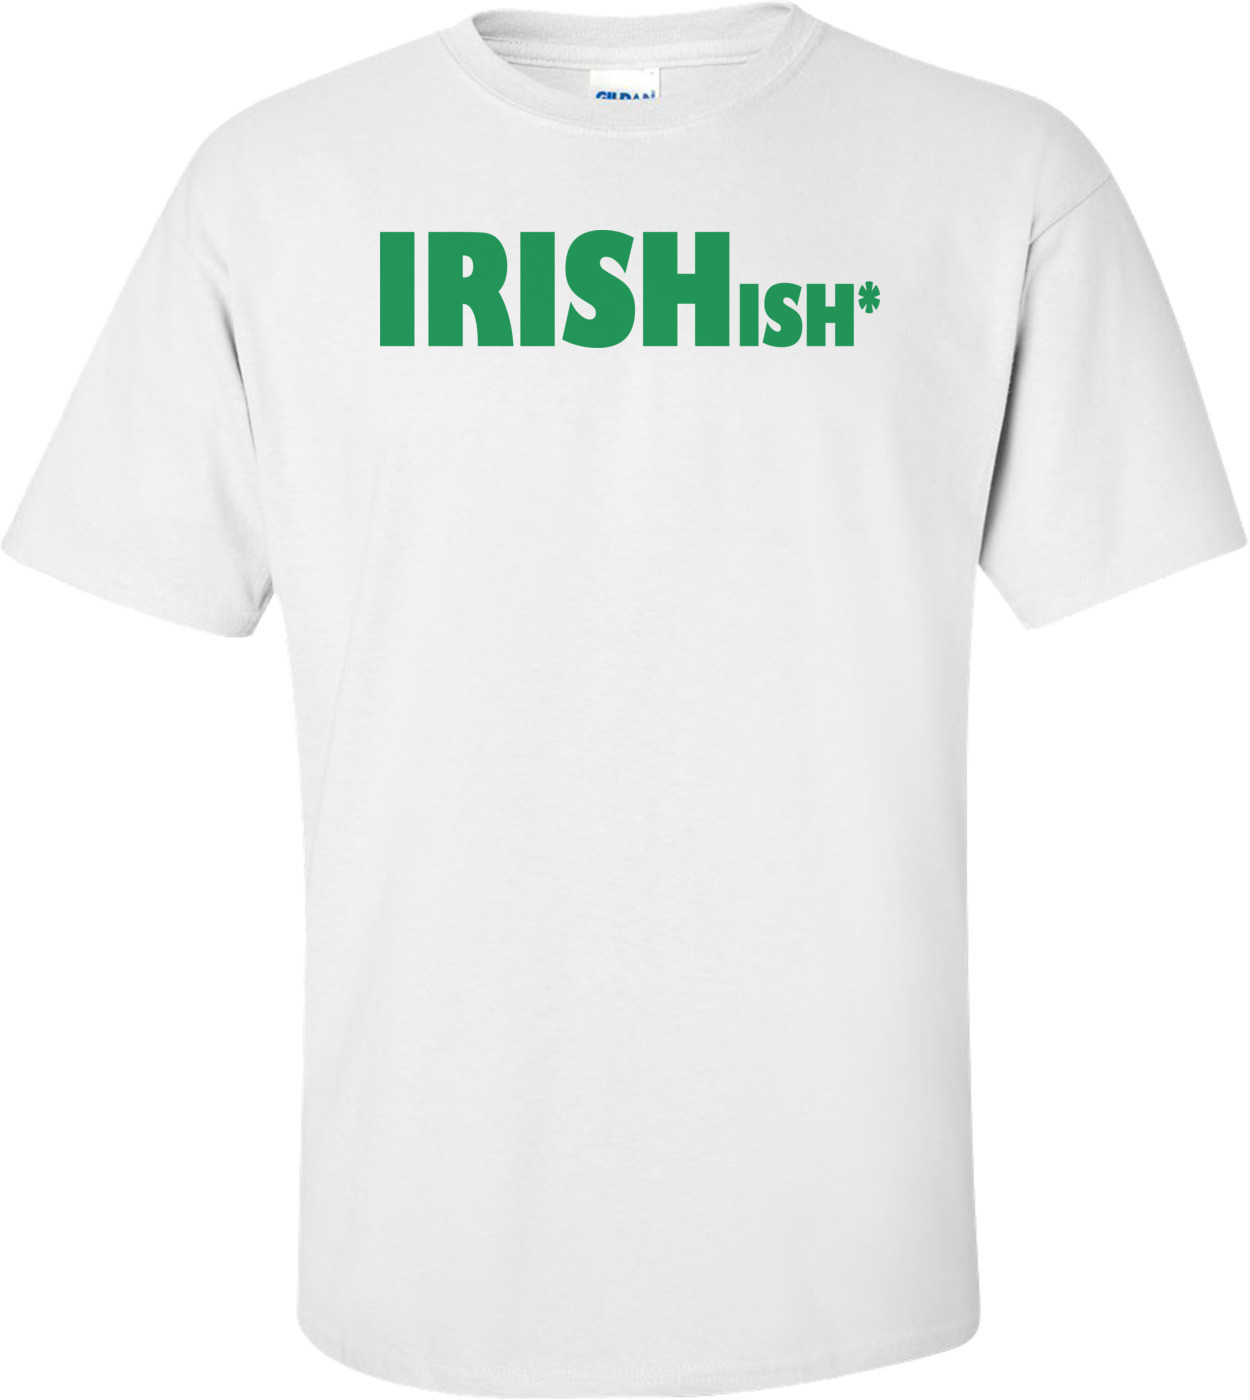 Irish-ish St. Paddy's Day Shirt